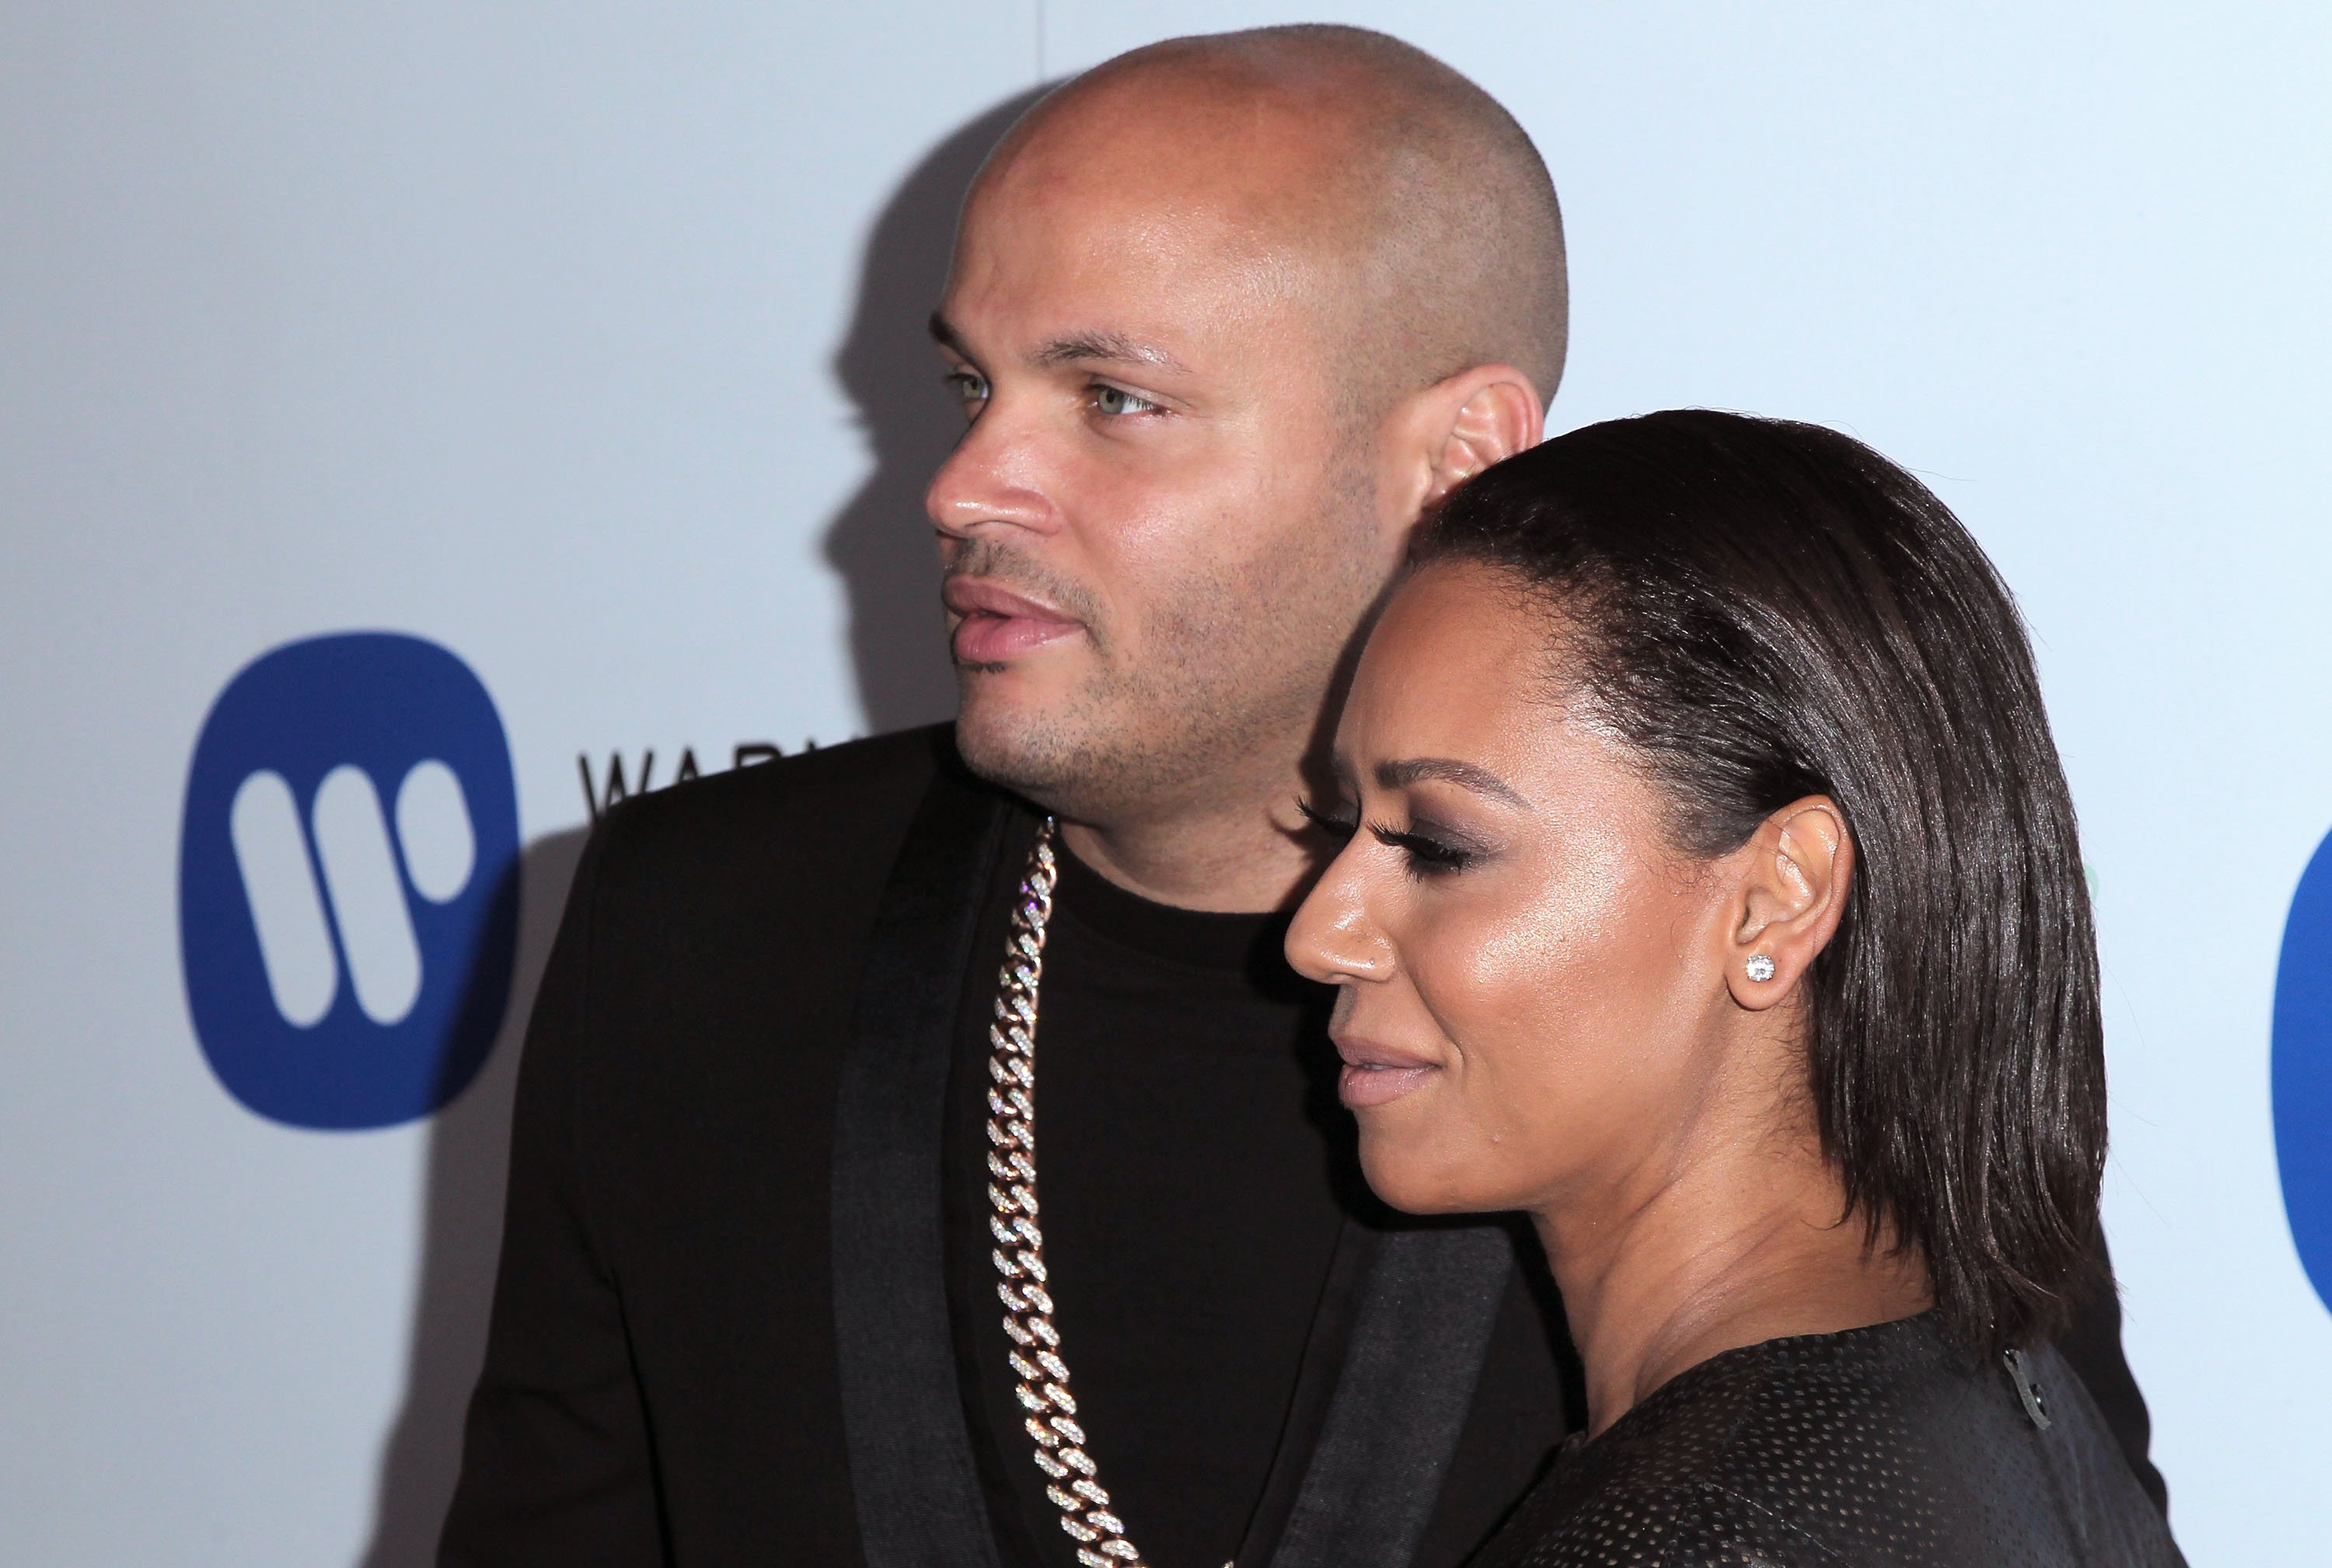 Mel B and her ex-husband Stephen Belafonte attending a Grammy celebration in February 2015. | Photo: Getty Images